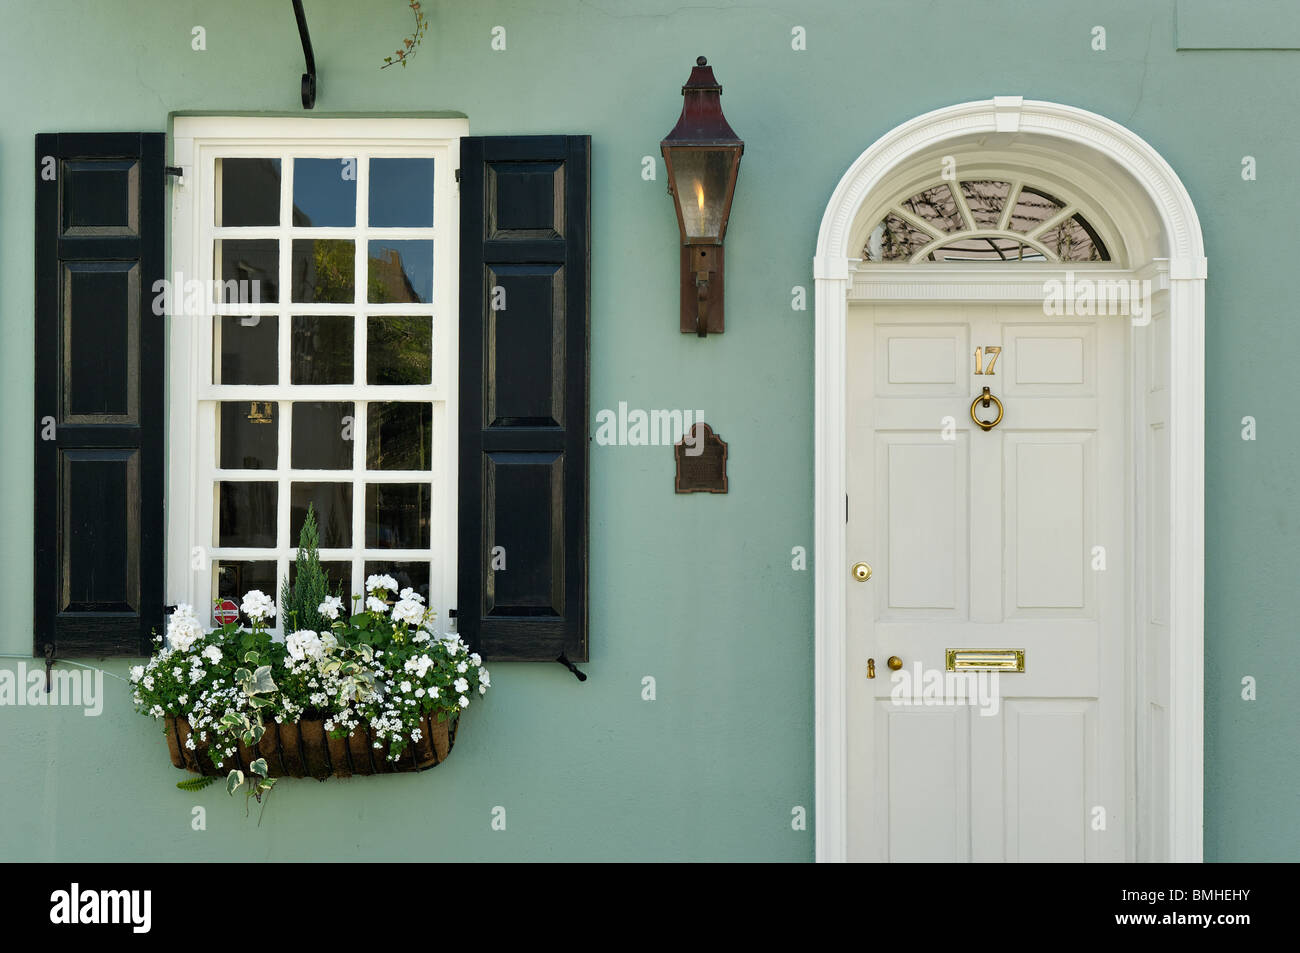 Detail of Door and Window of the Historic Charles Warham Home in Charleston, South Carolina Stock Photo